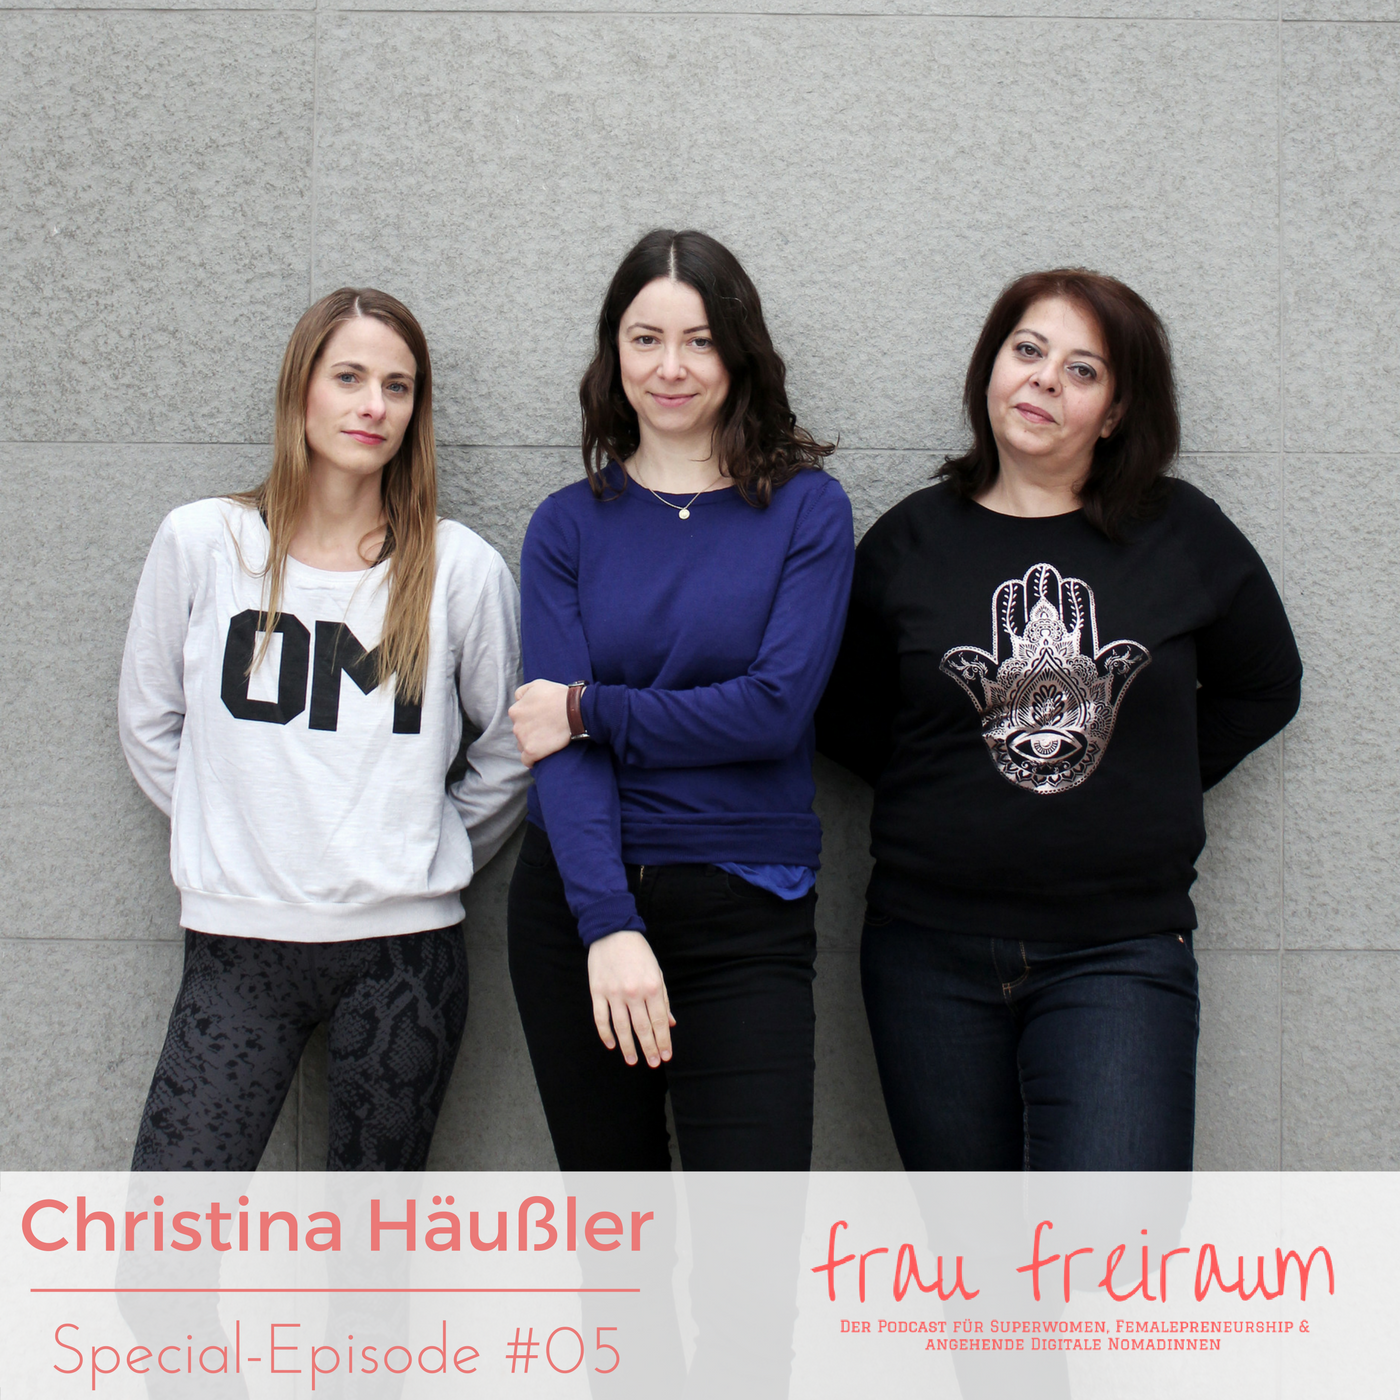 Christina Häußler-frau freiraum Podcast Episode 5